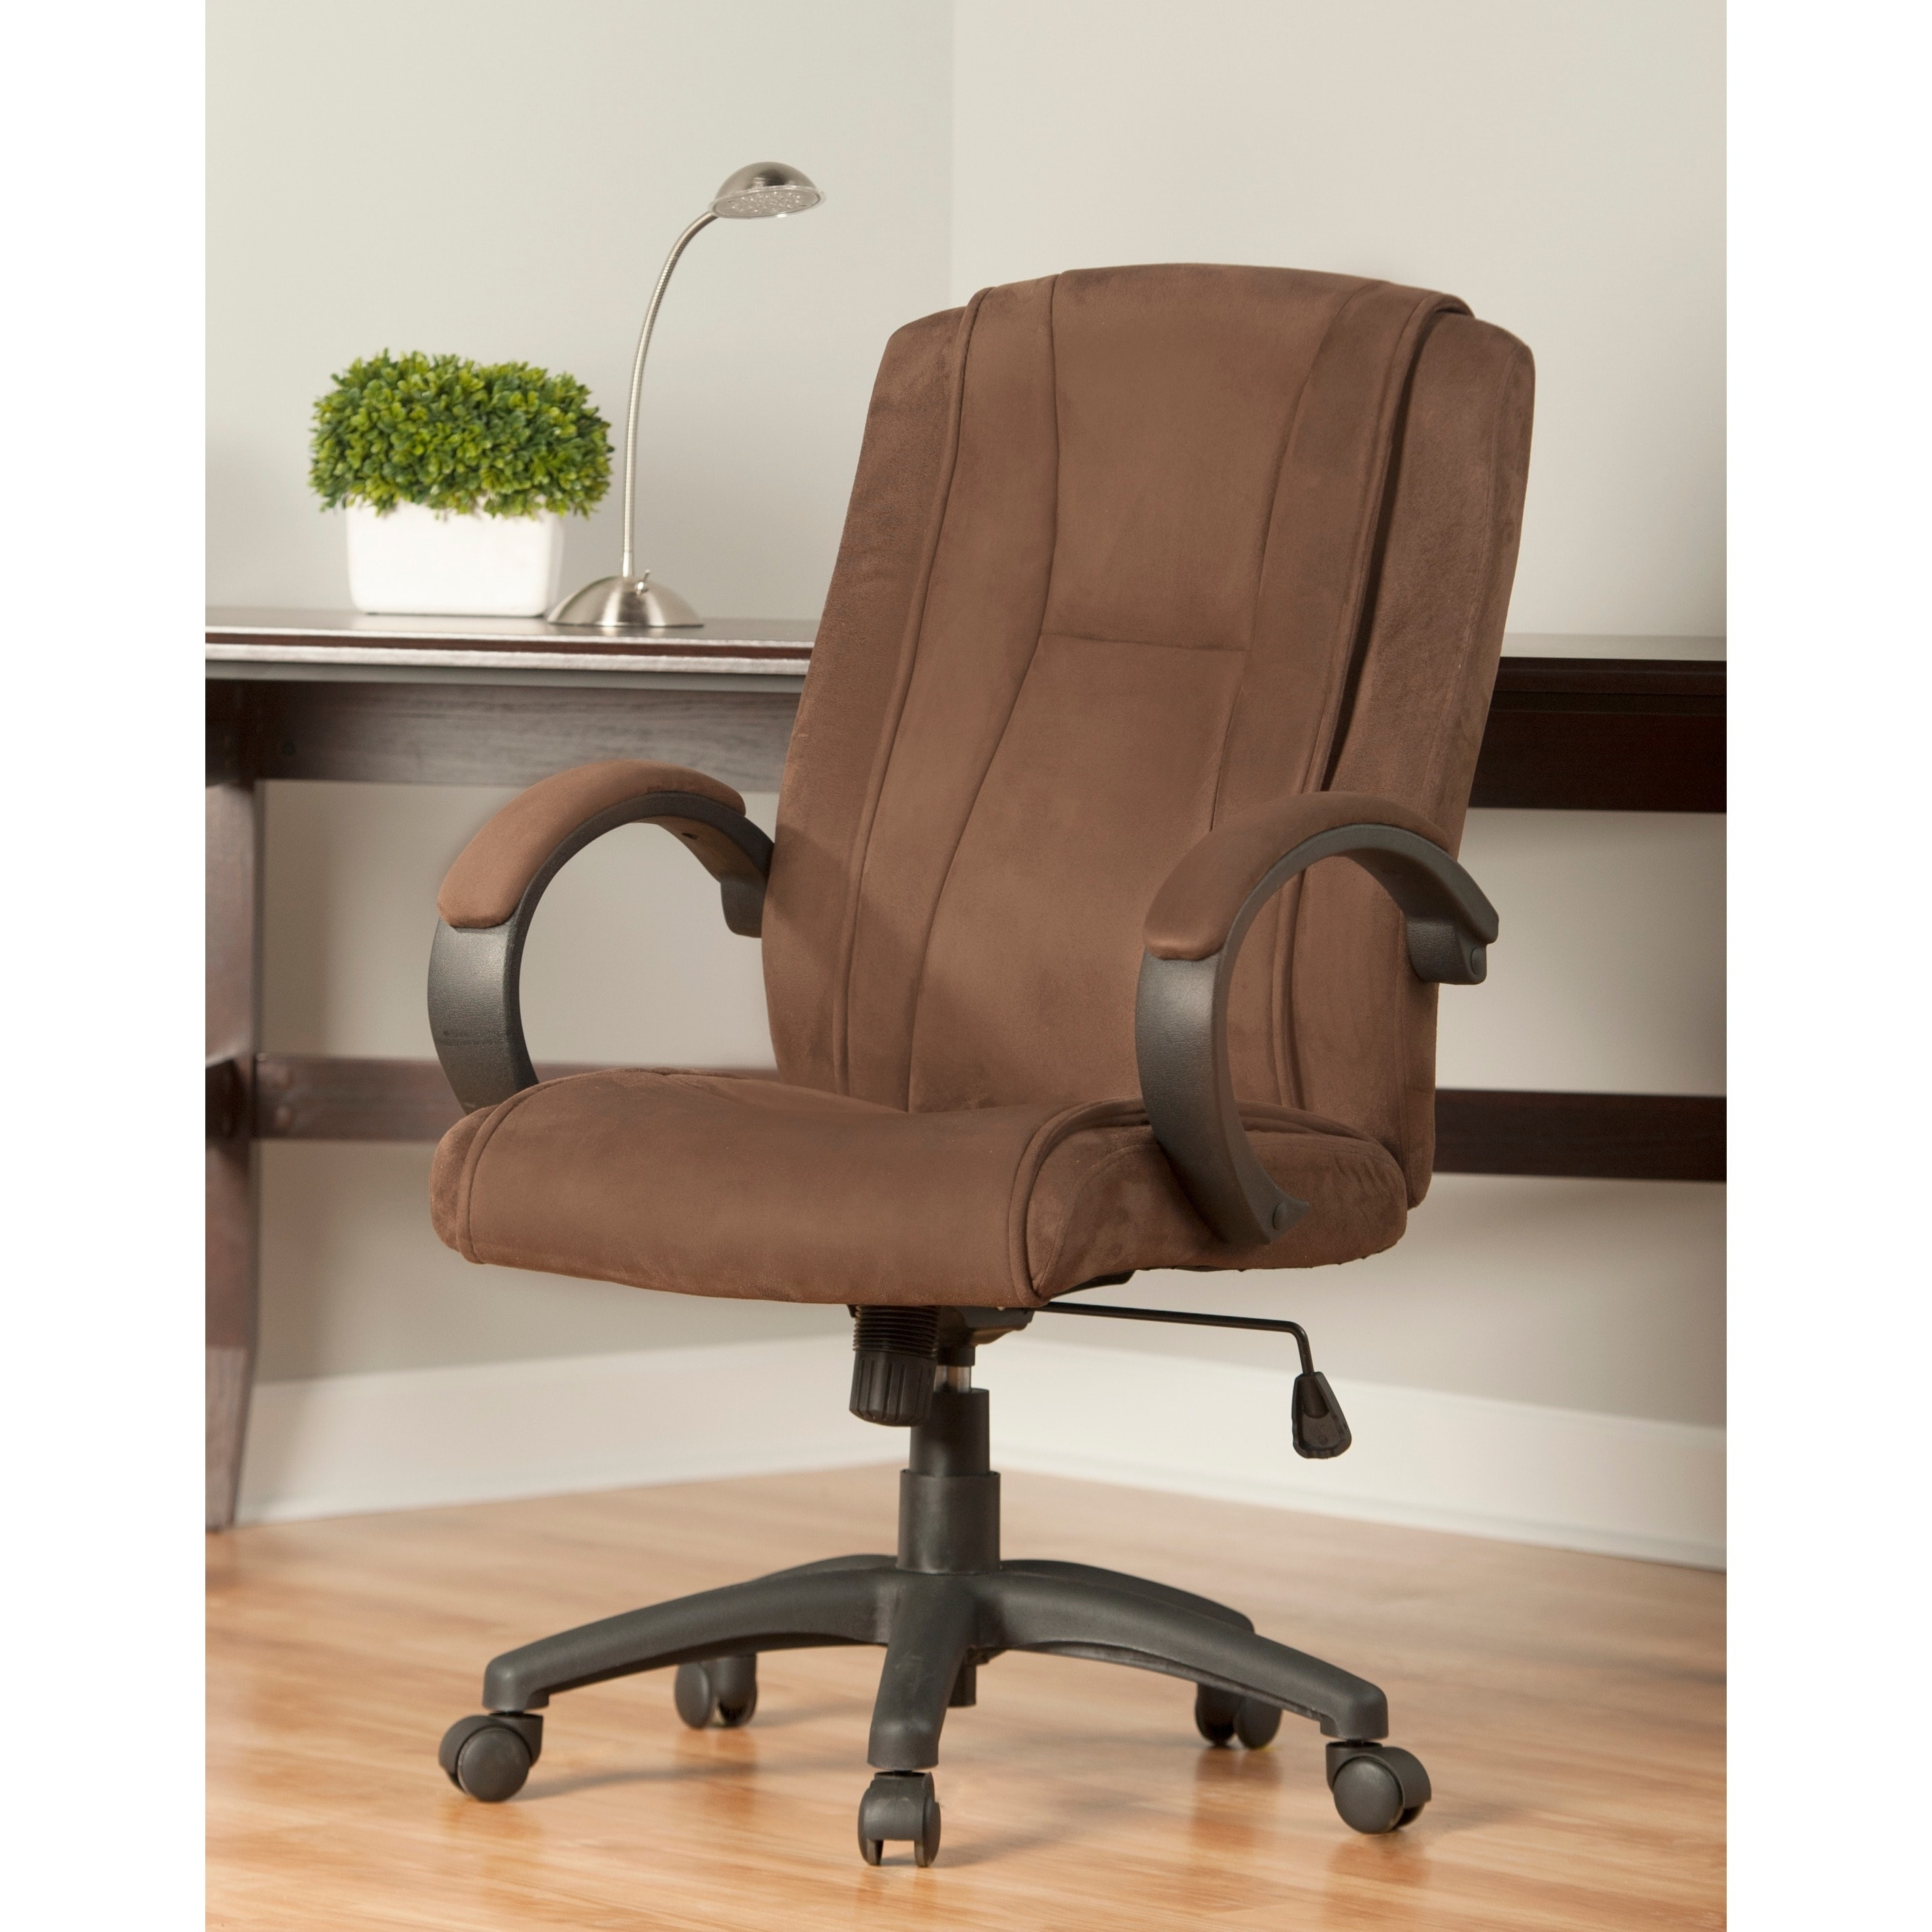 2019 Light Beige Microfiber Executive Office Chairs Regarding Comfort Products Padded Microsuede Office Chair – Free Shipping (View 2 of 20)